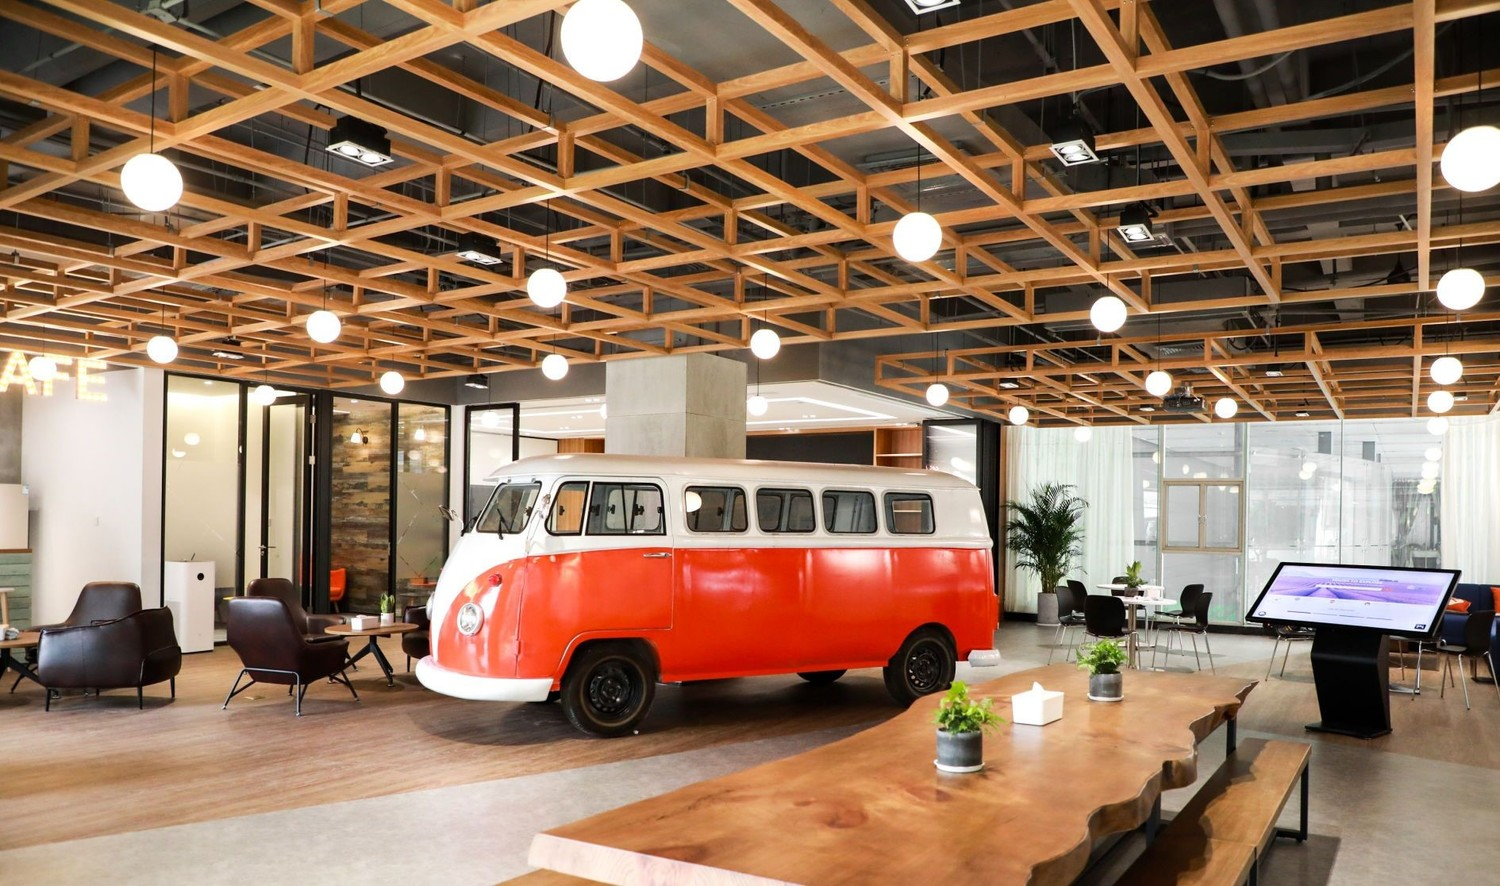 Wood, Chair, Furniture, Vehicle, Transportation, Tabletop, Bus, Indoors, Plywood, Table